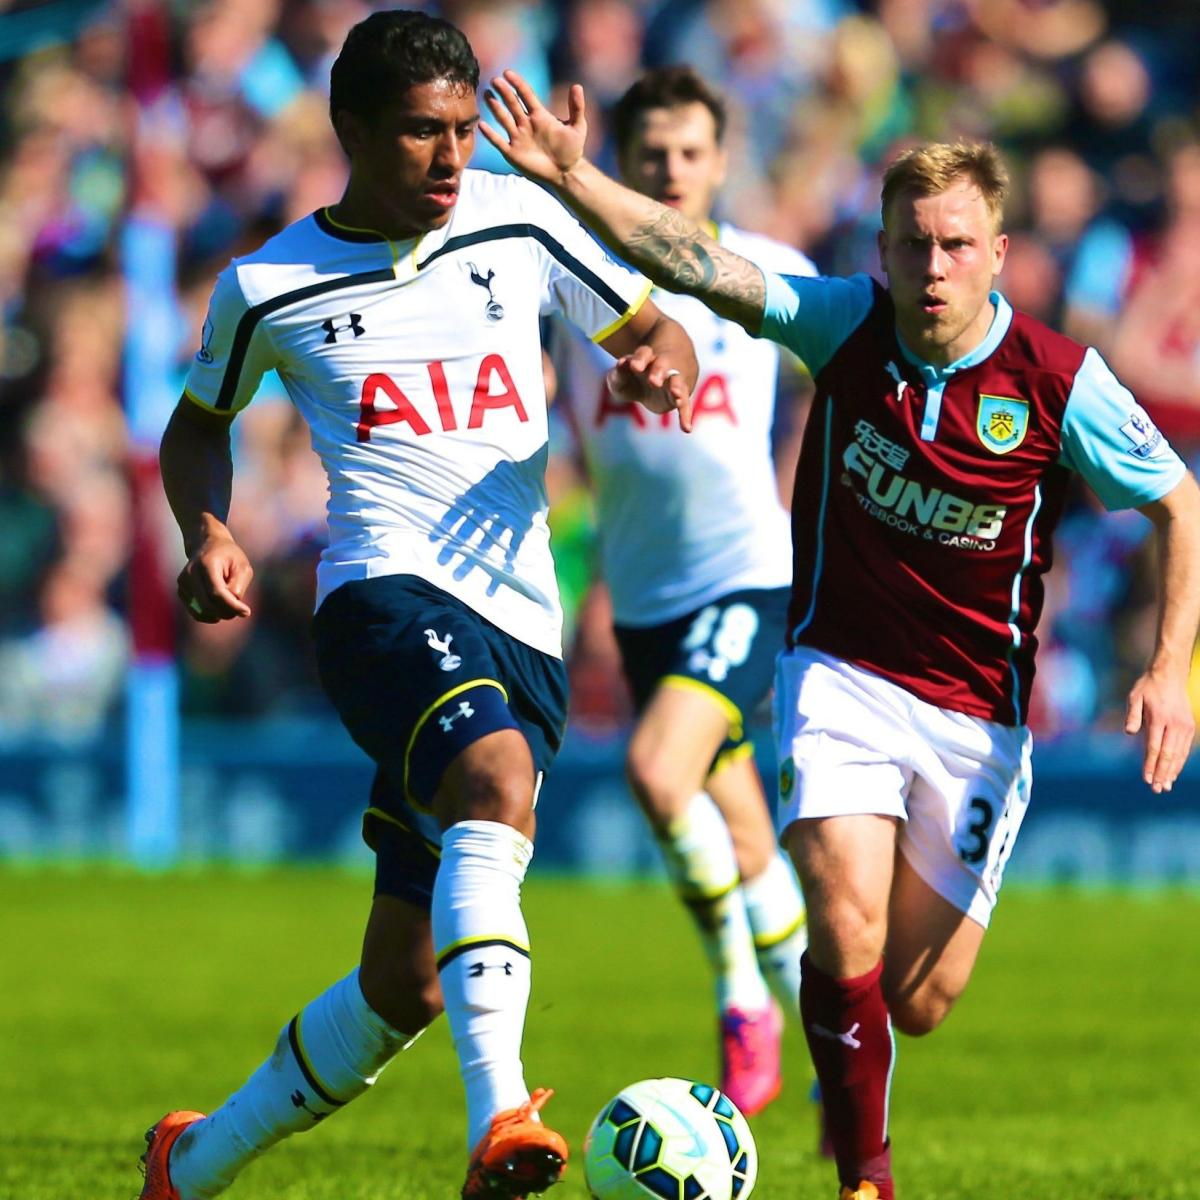 tottenham vs burnley fc - HD 1024×805